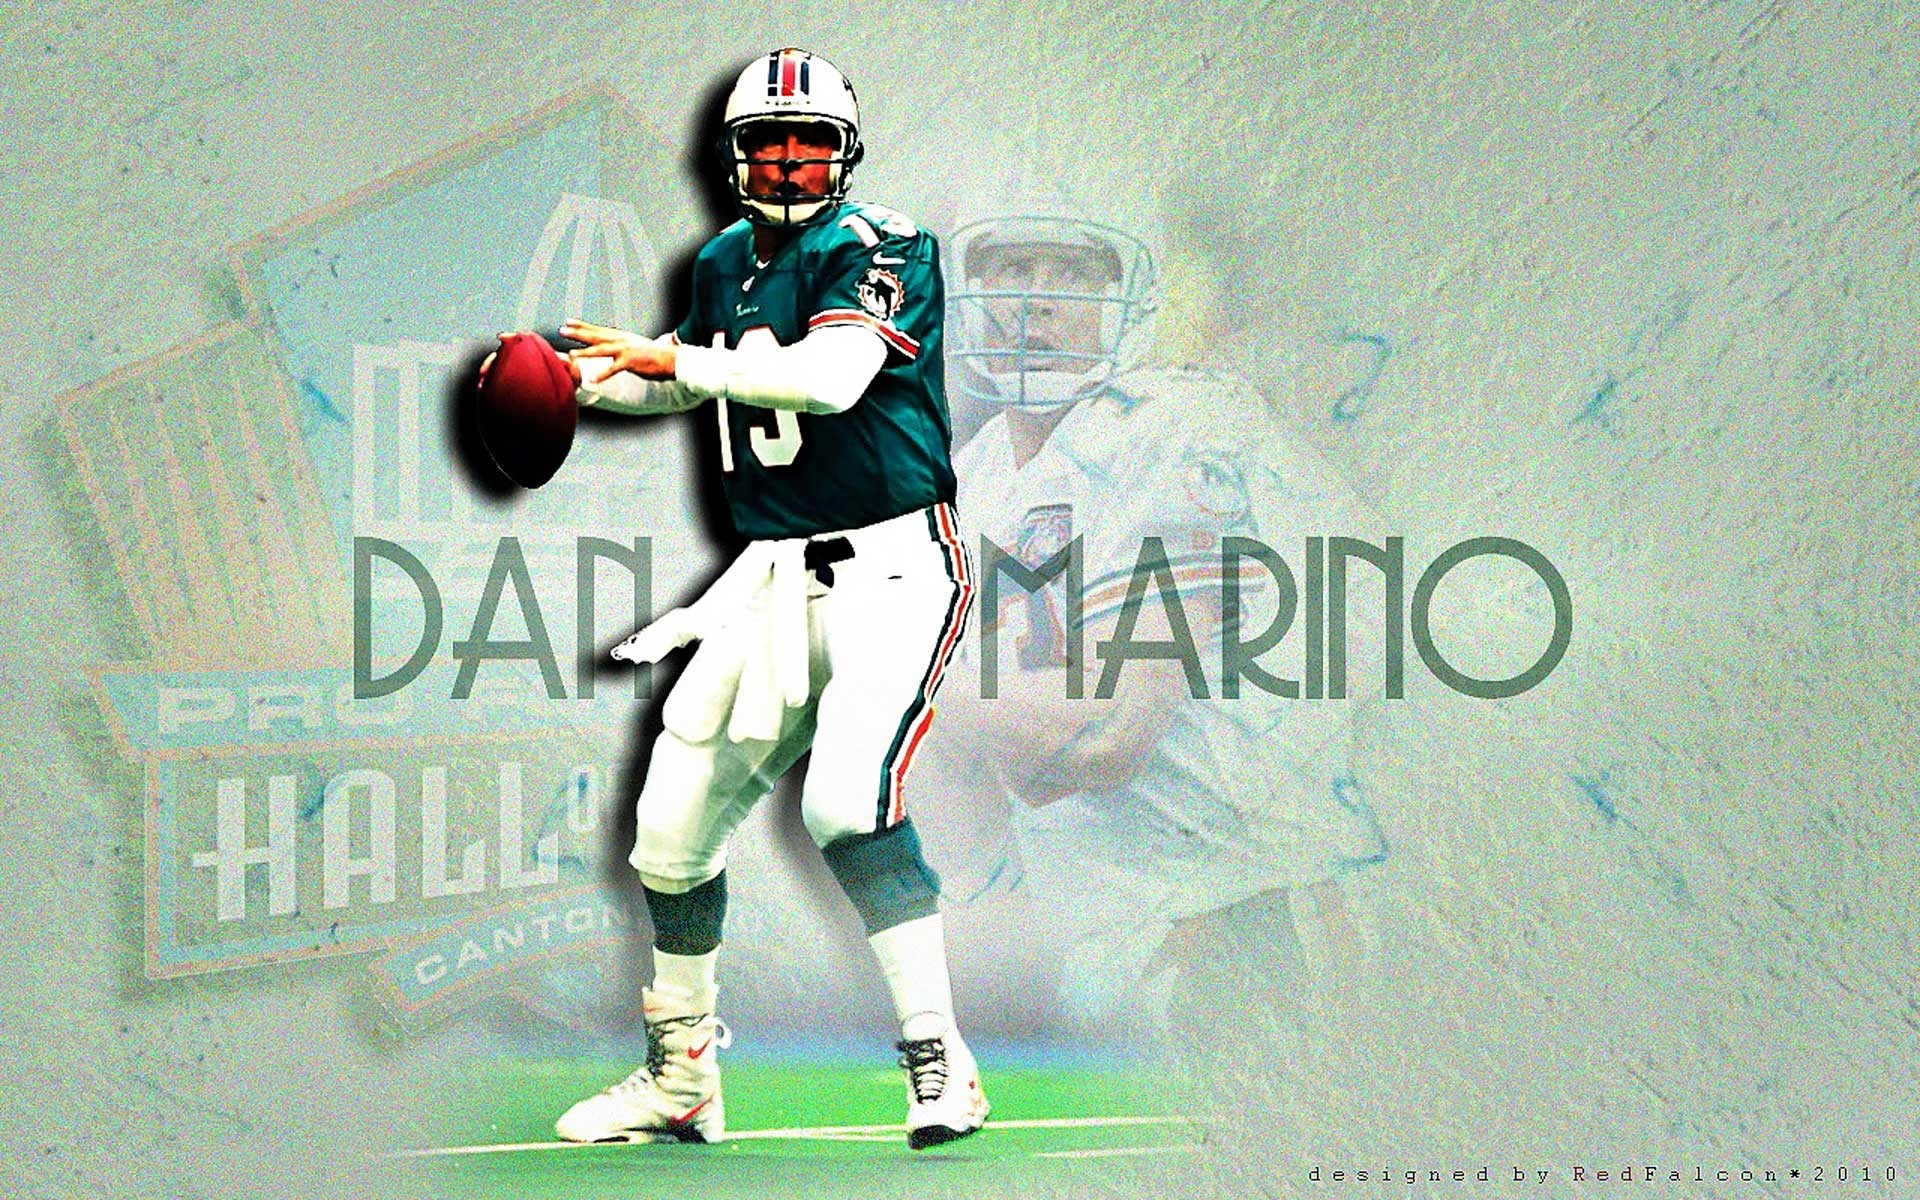 1920x1200 Download Miami Dolphins Dan Marino Wallpaper pictures in high .